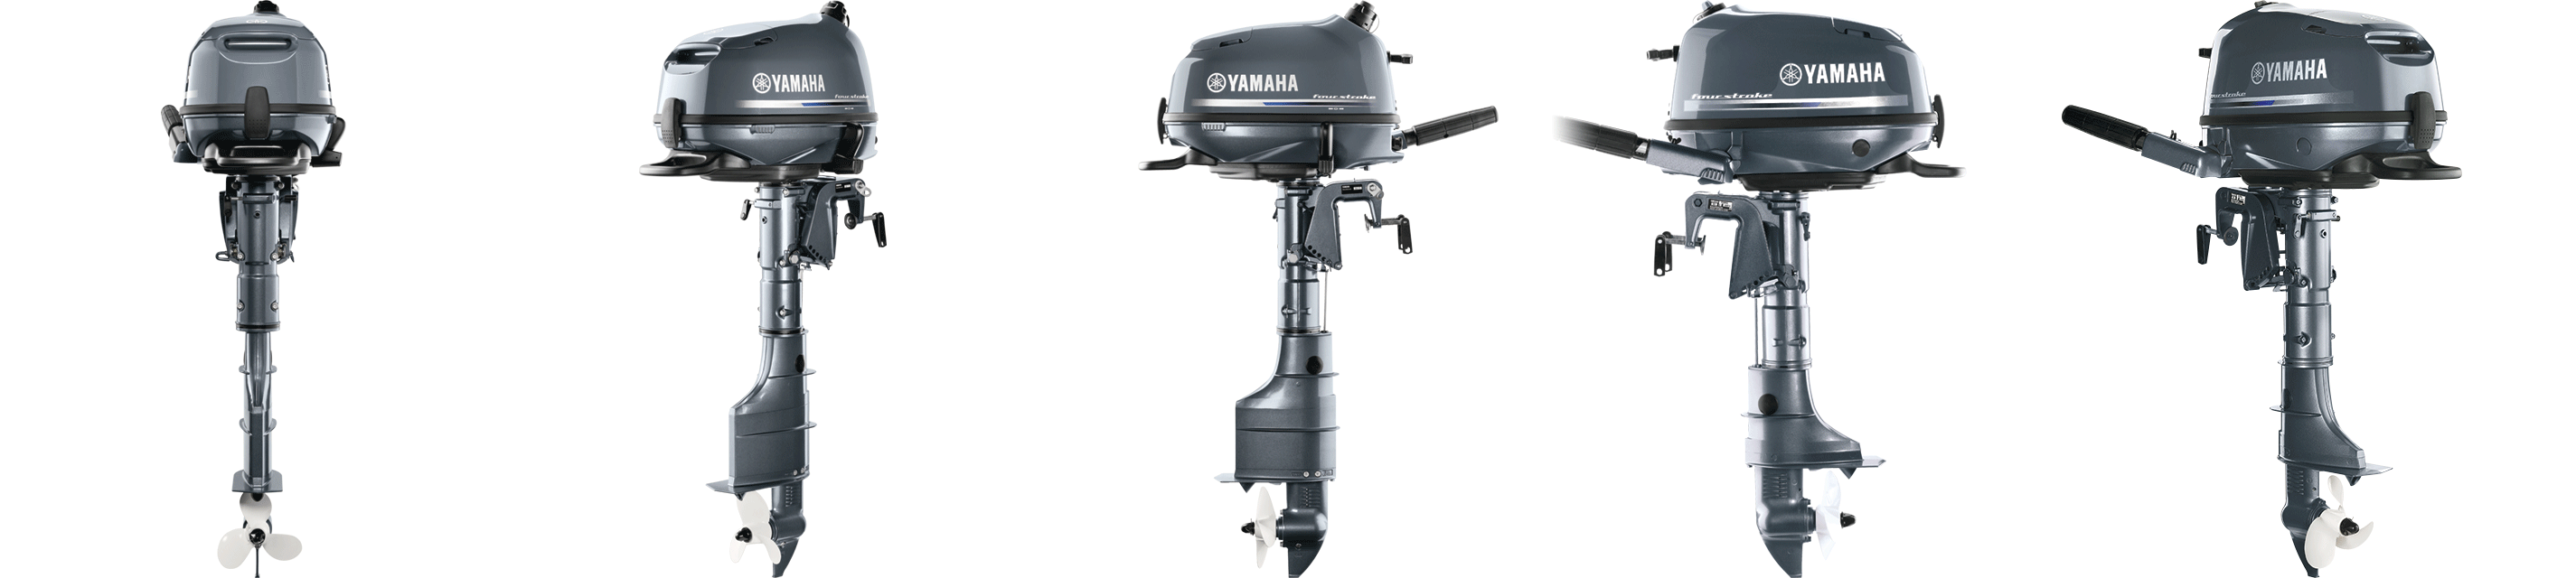 Outboards 6 To 25 Hp Portable Yamaha Horsepower 4 5 Model 5hp 2 Stroke Propeller Except Models And Under Which Include A Standard All Jet Weights The Pump Assembly Weight Estimated